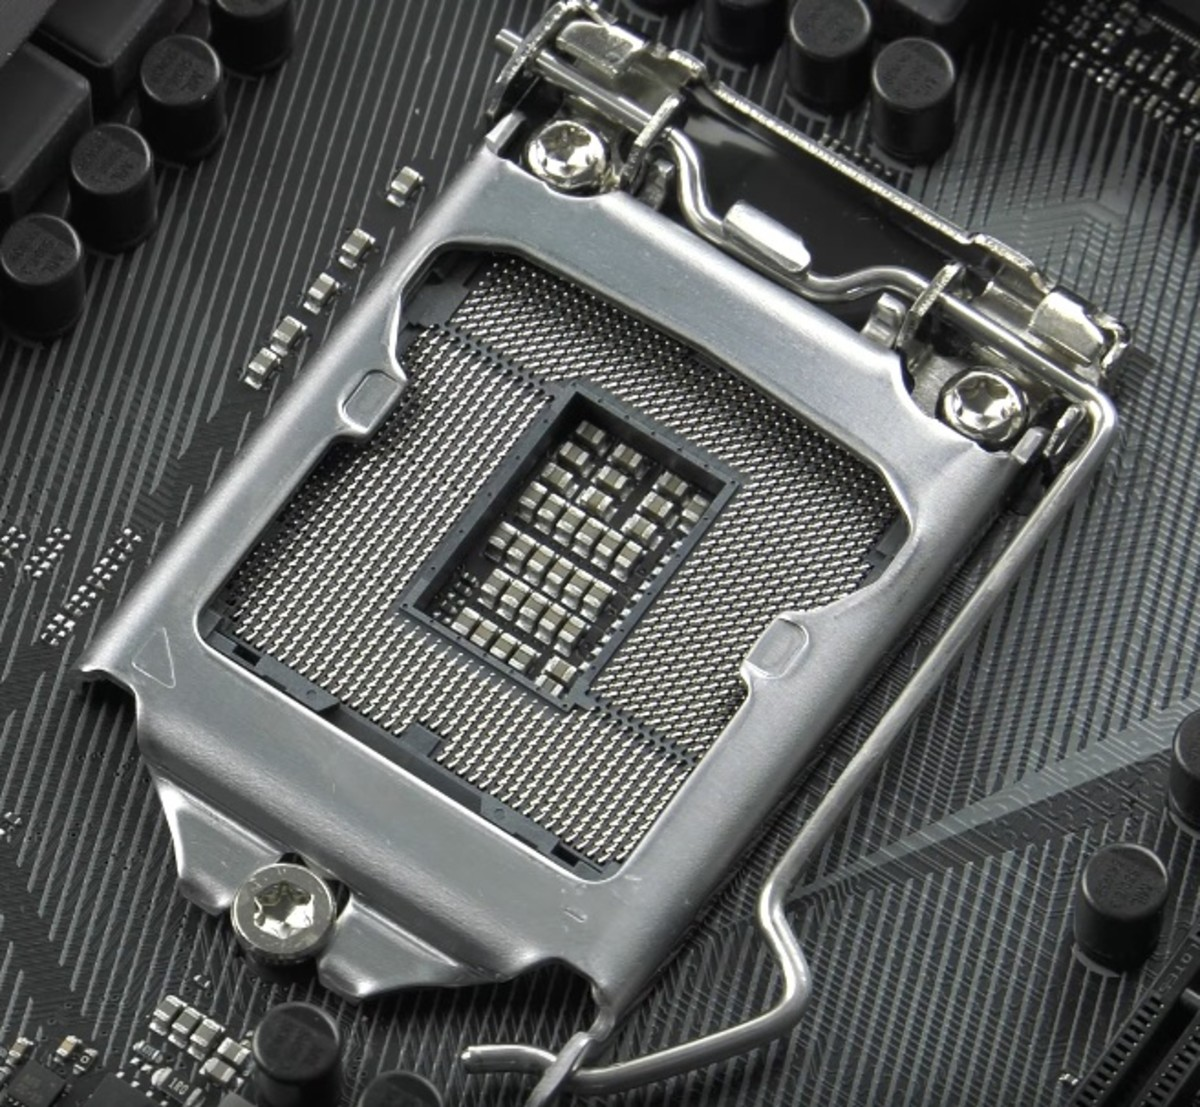 Intel's Z270 Chipset is designed for seventh generation Kaby Lake CPUs. Previous generation Skylake CPUs will also work with this chipset.